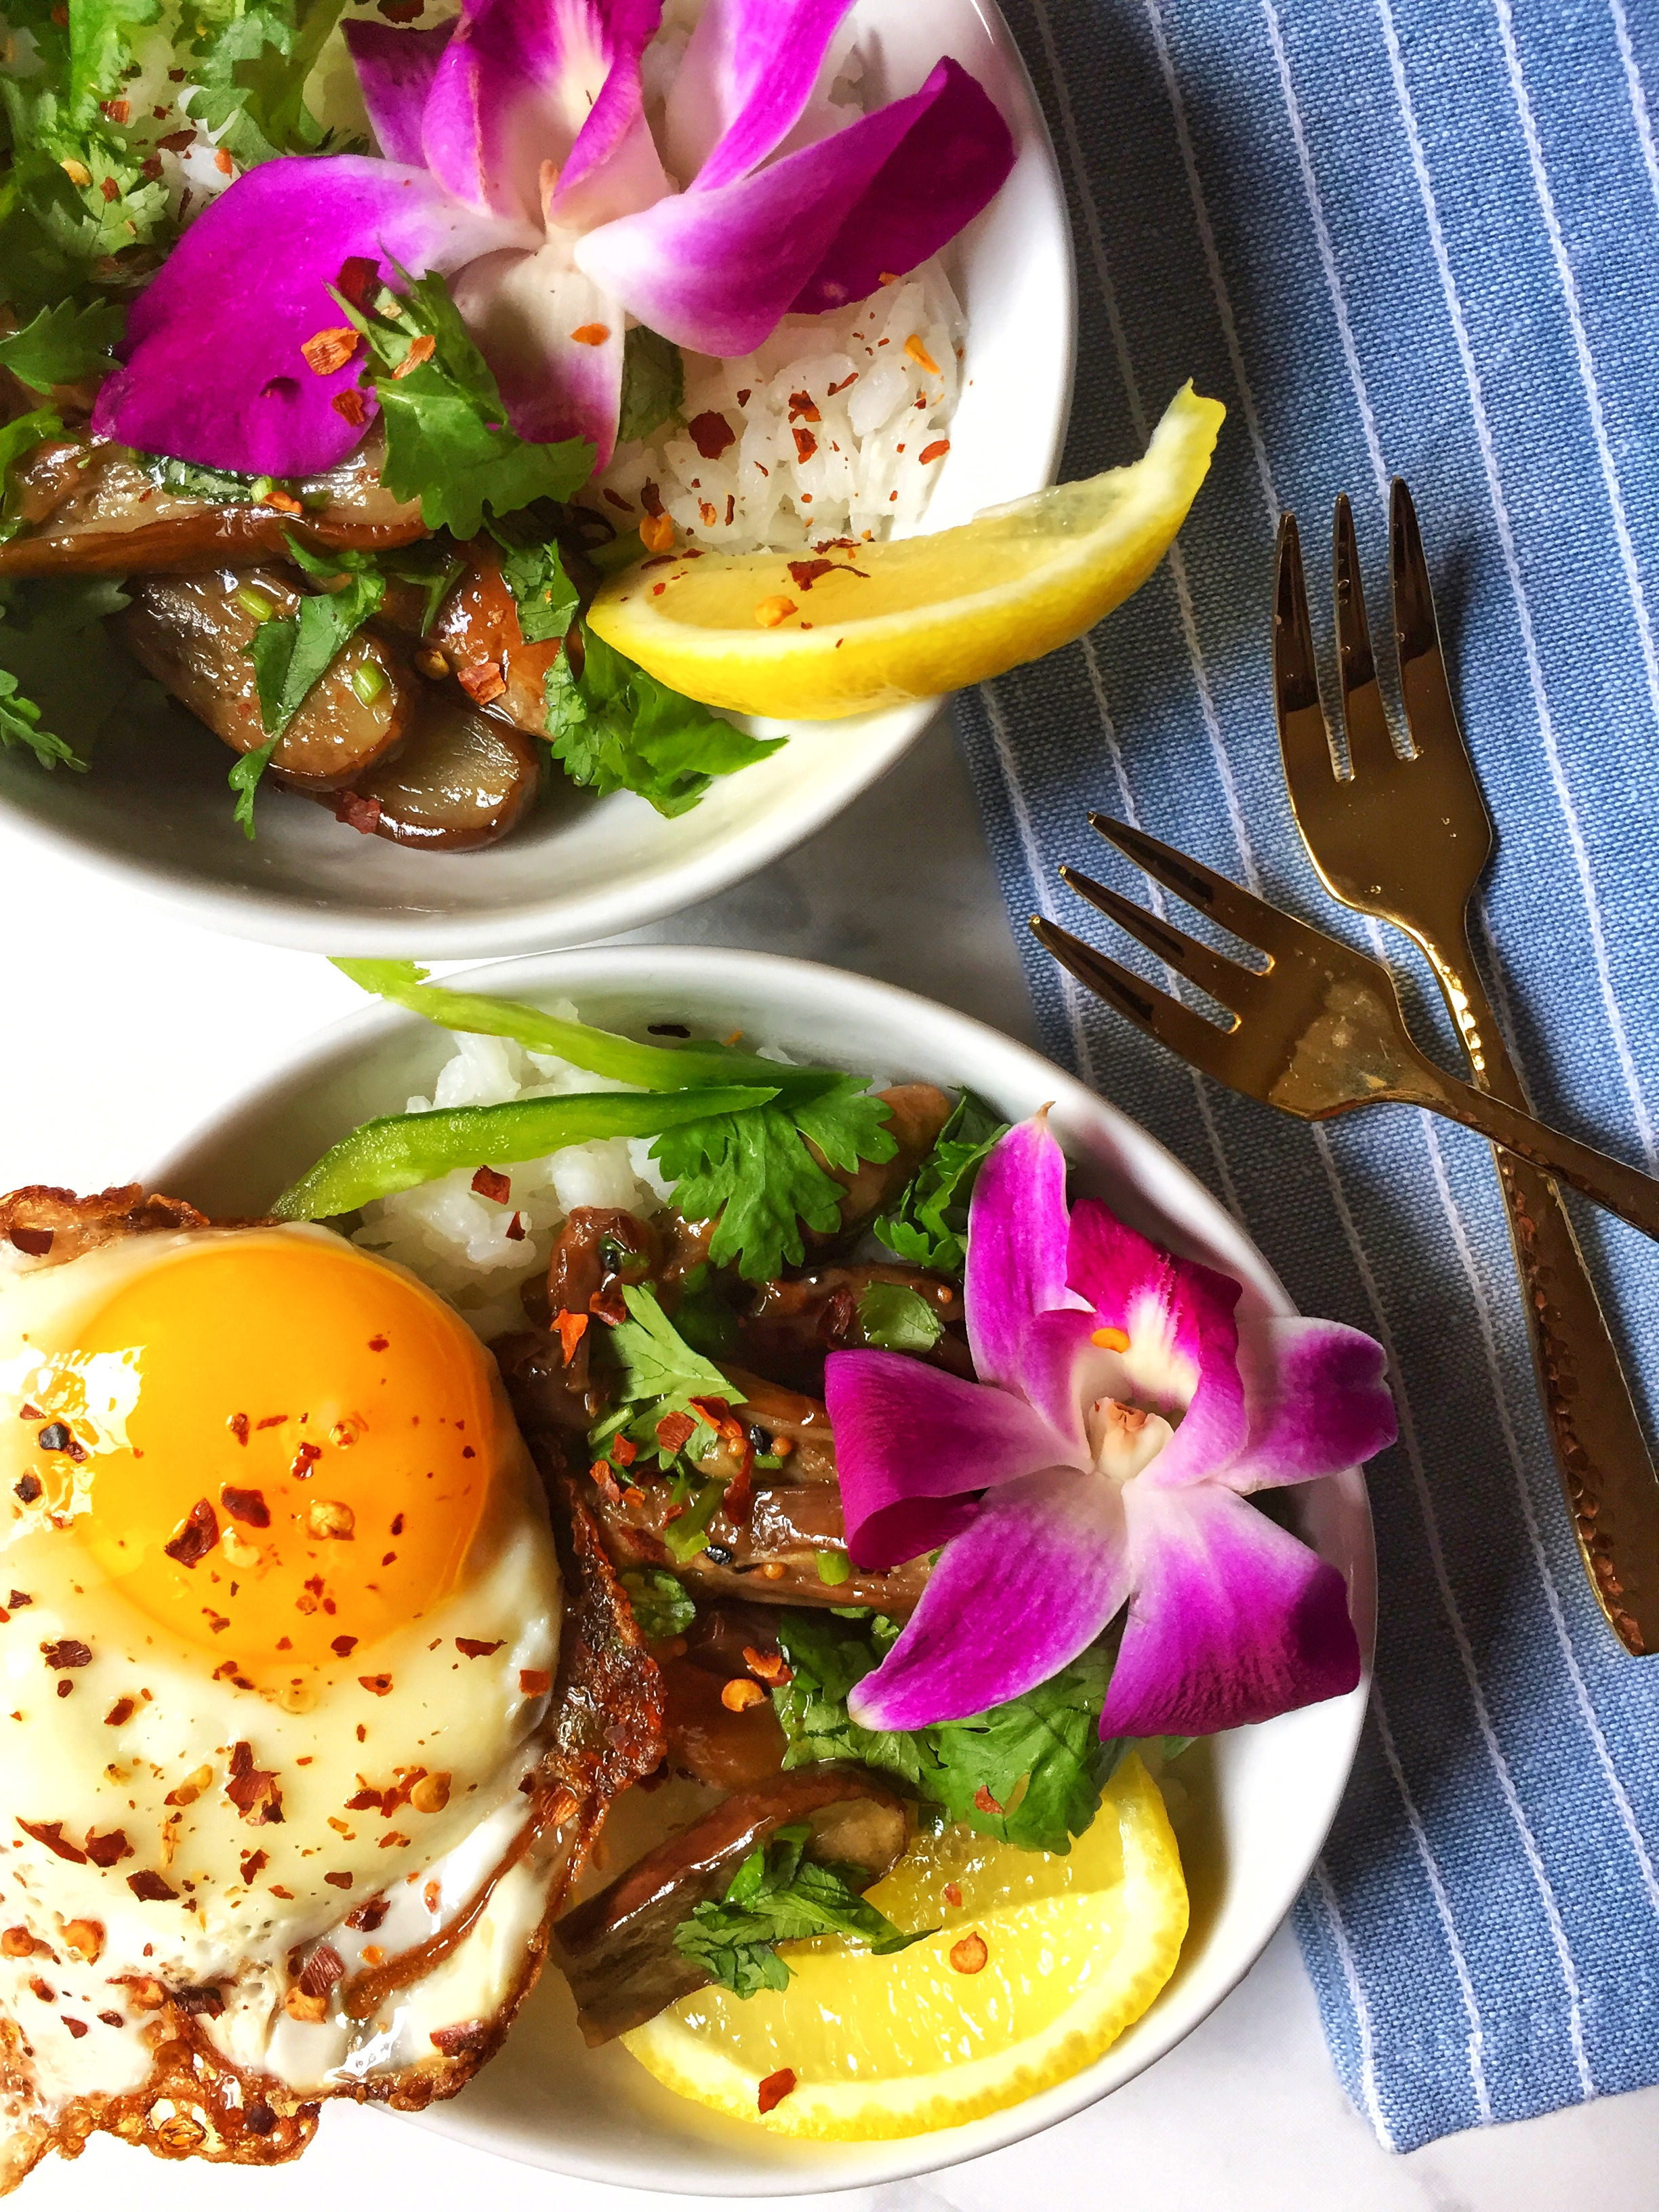 tangy, sweet, and spicy tamarind eggplants with jasmine rice, chili, and a crispy fried egg ~